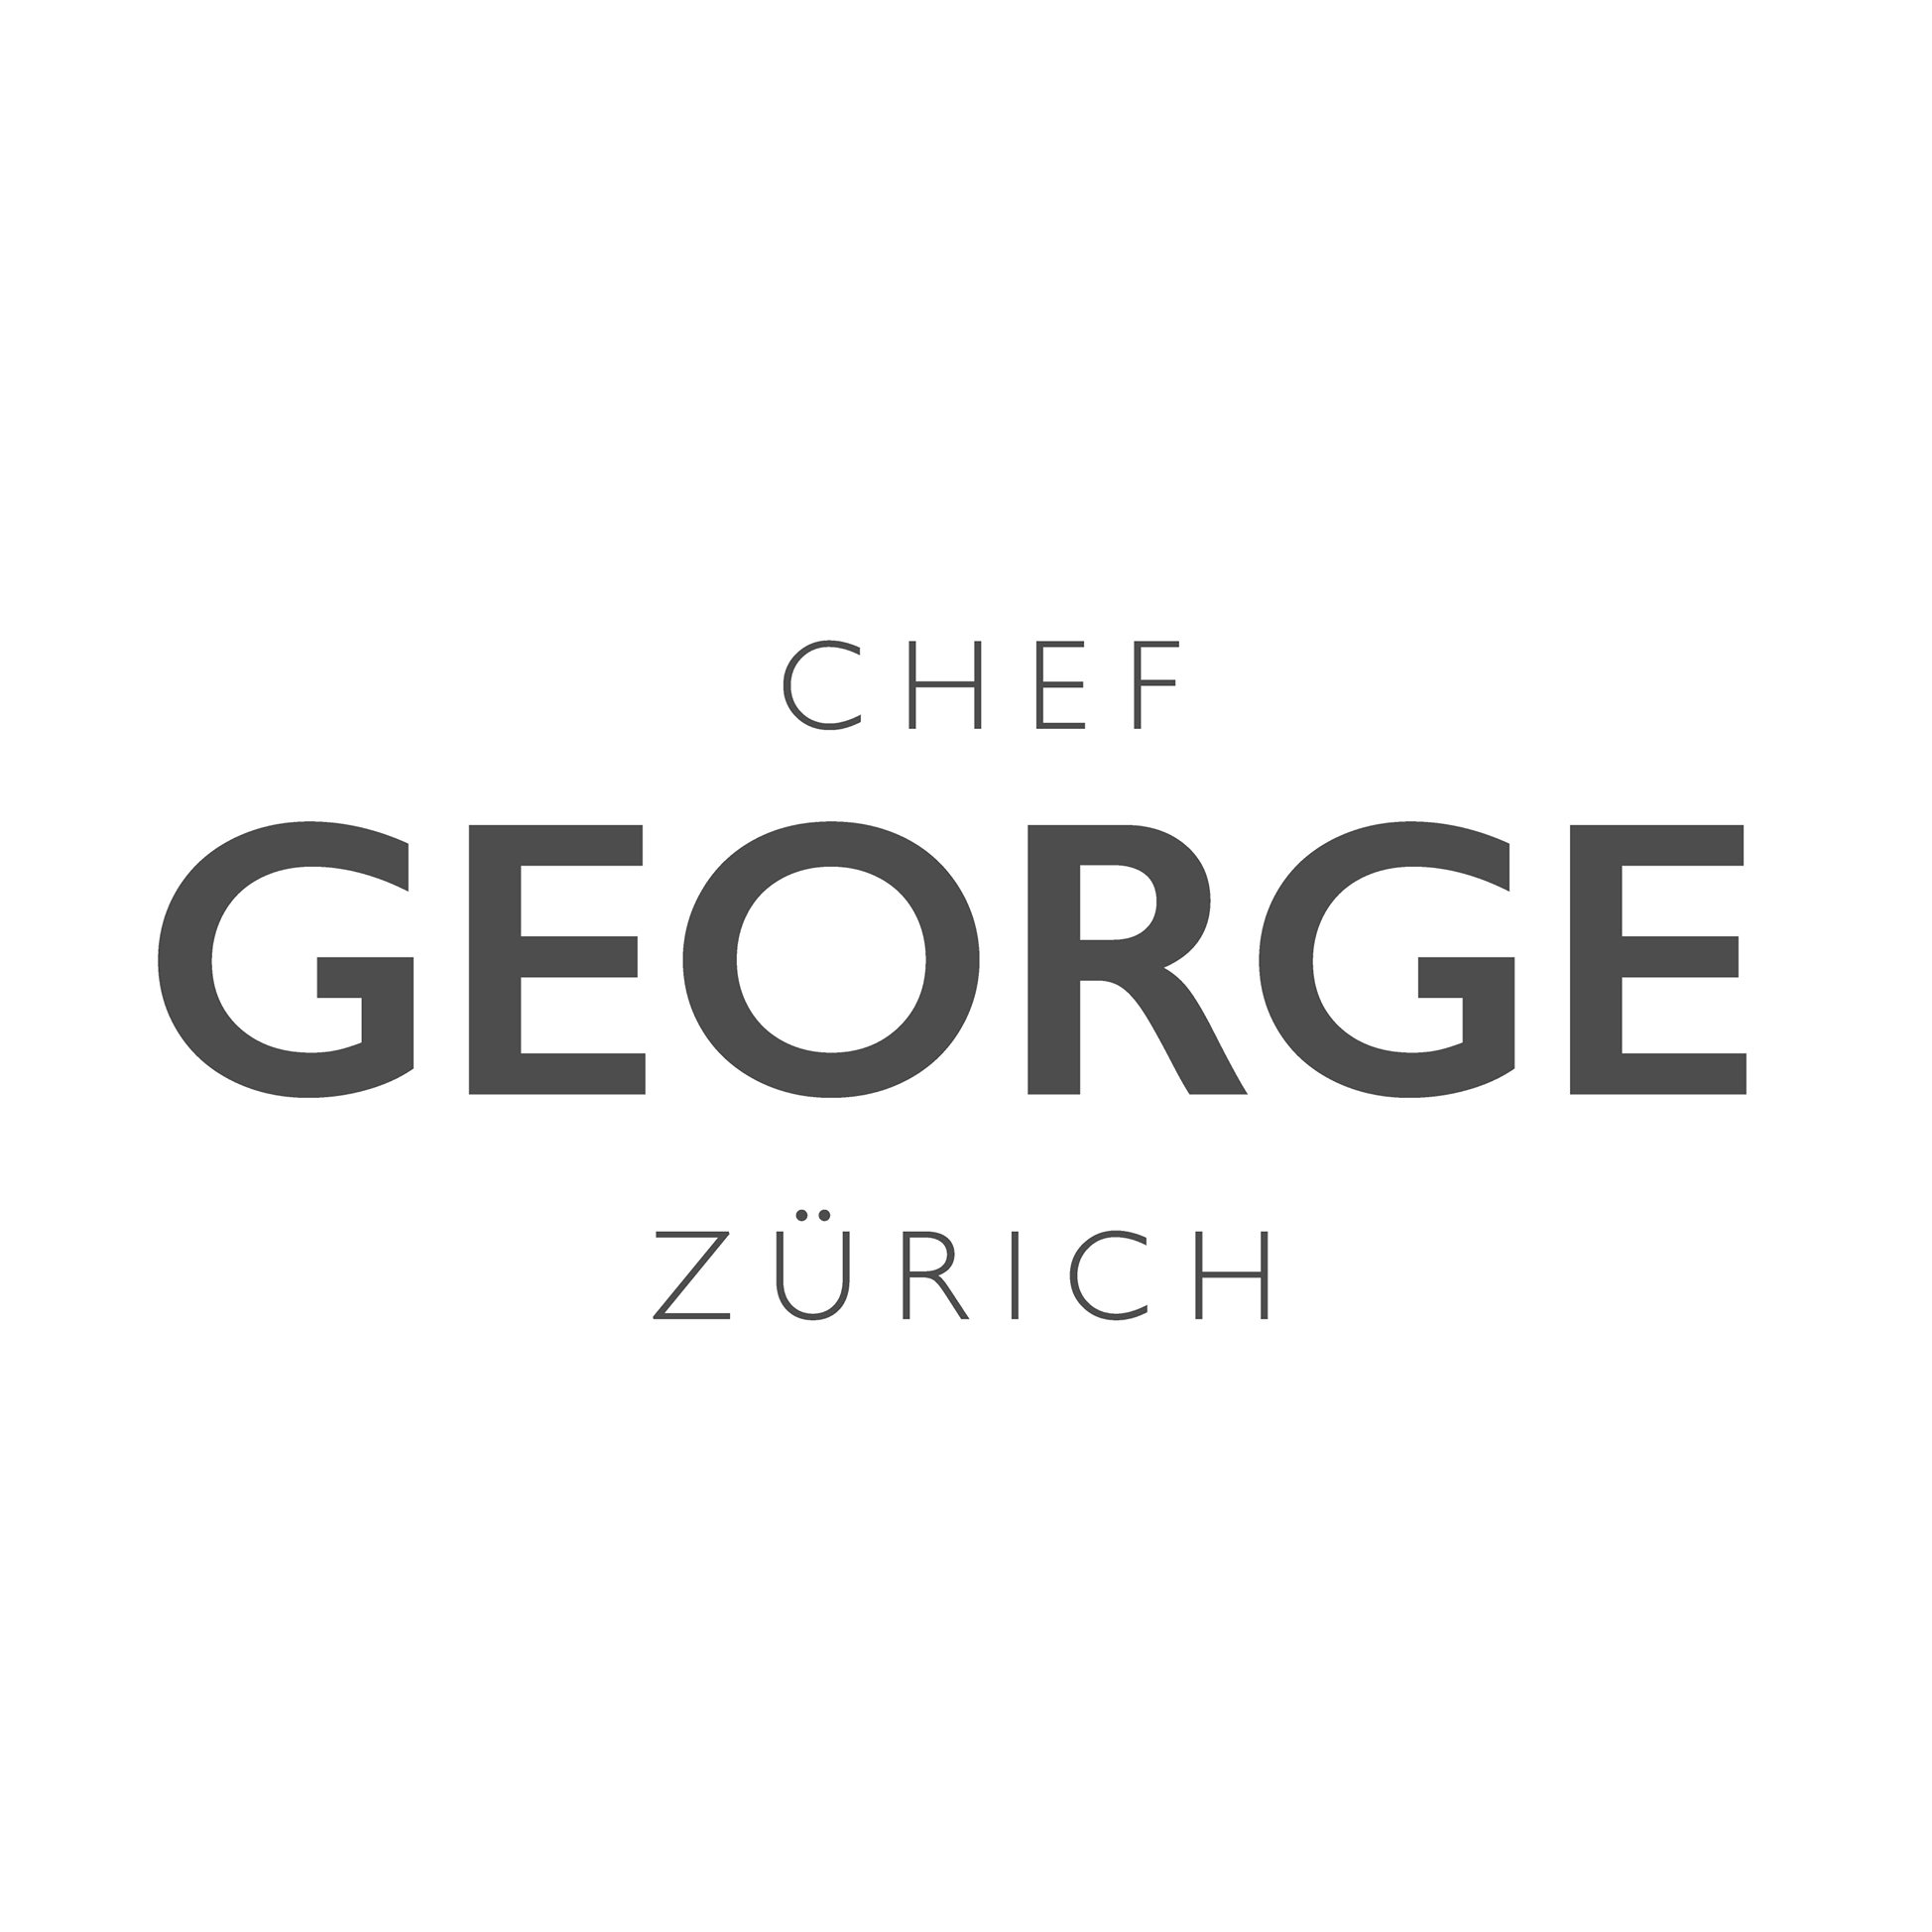 Chef George